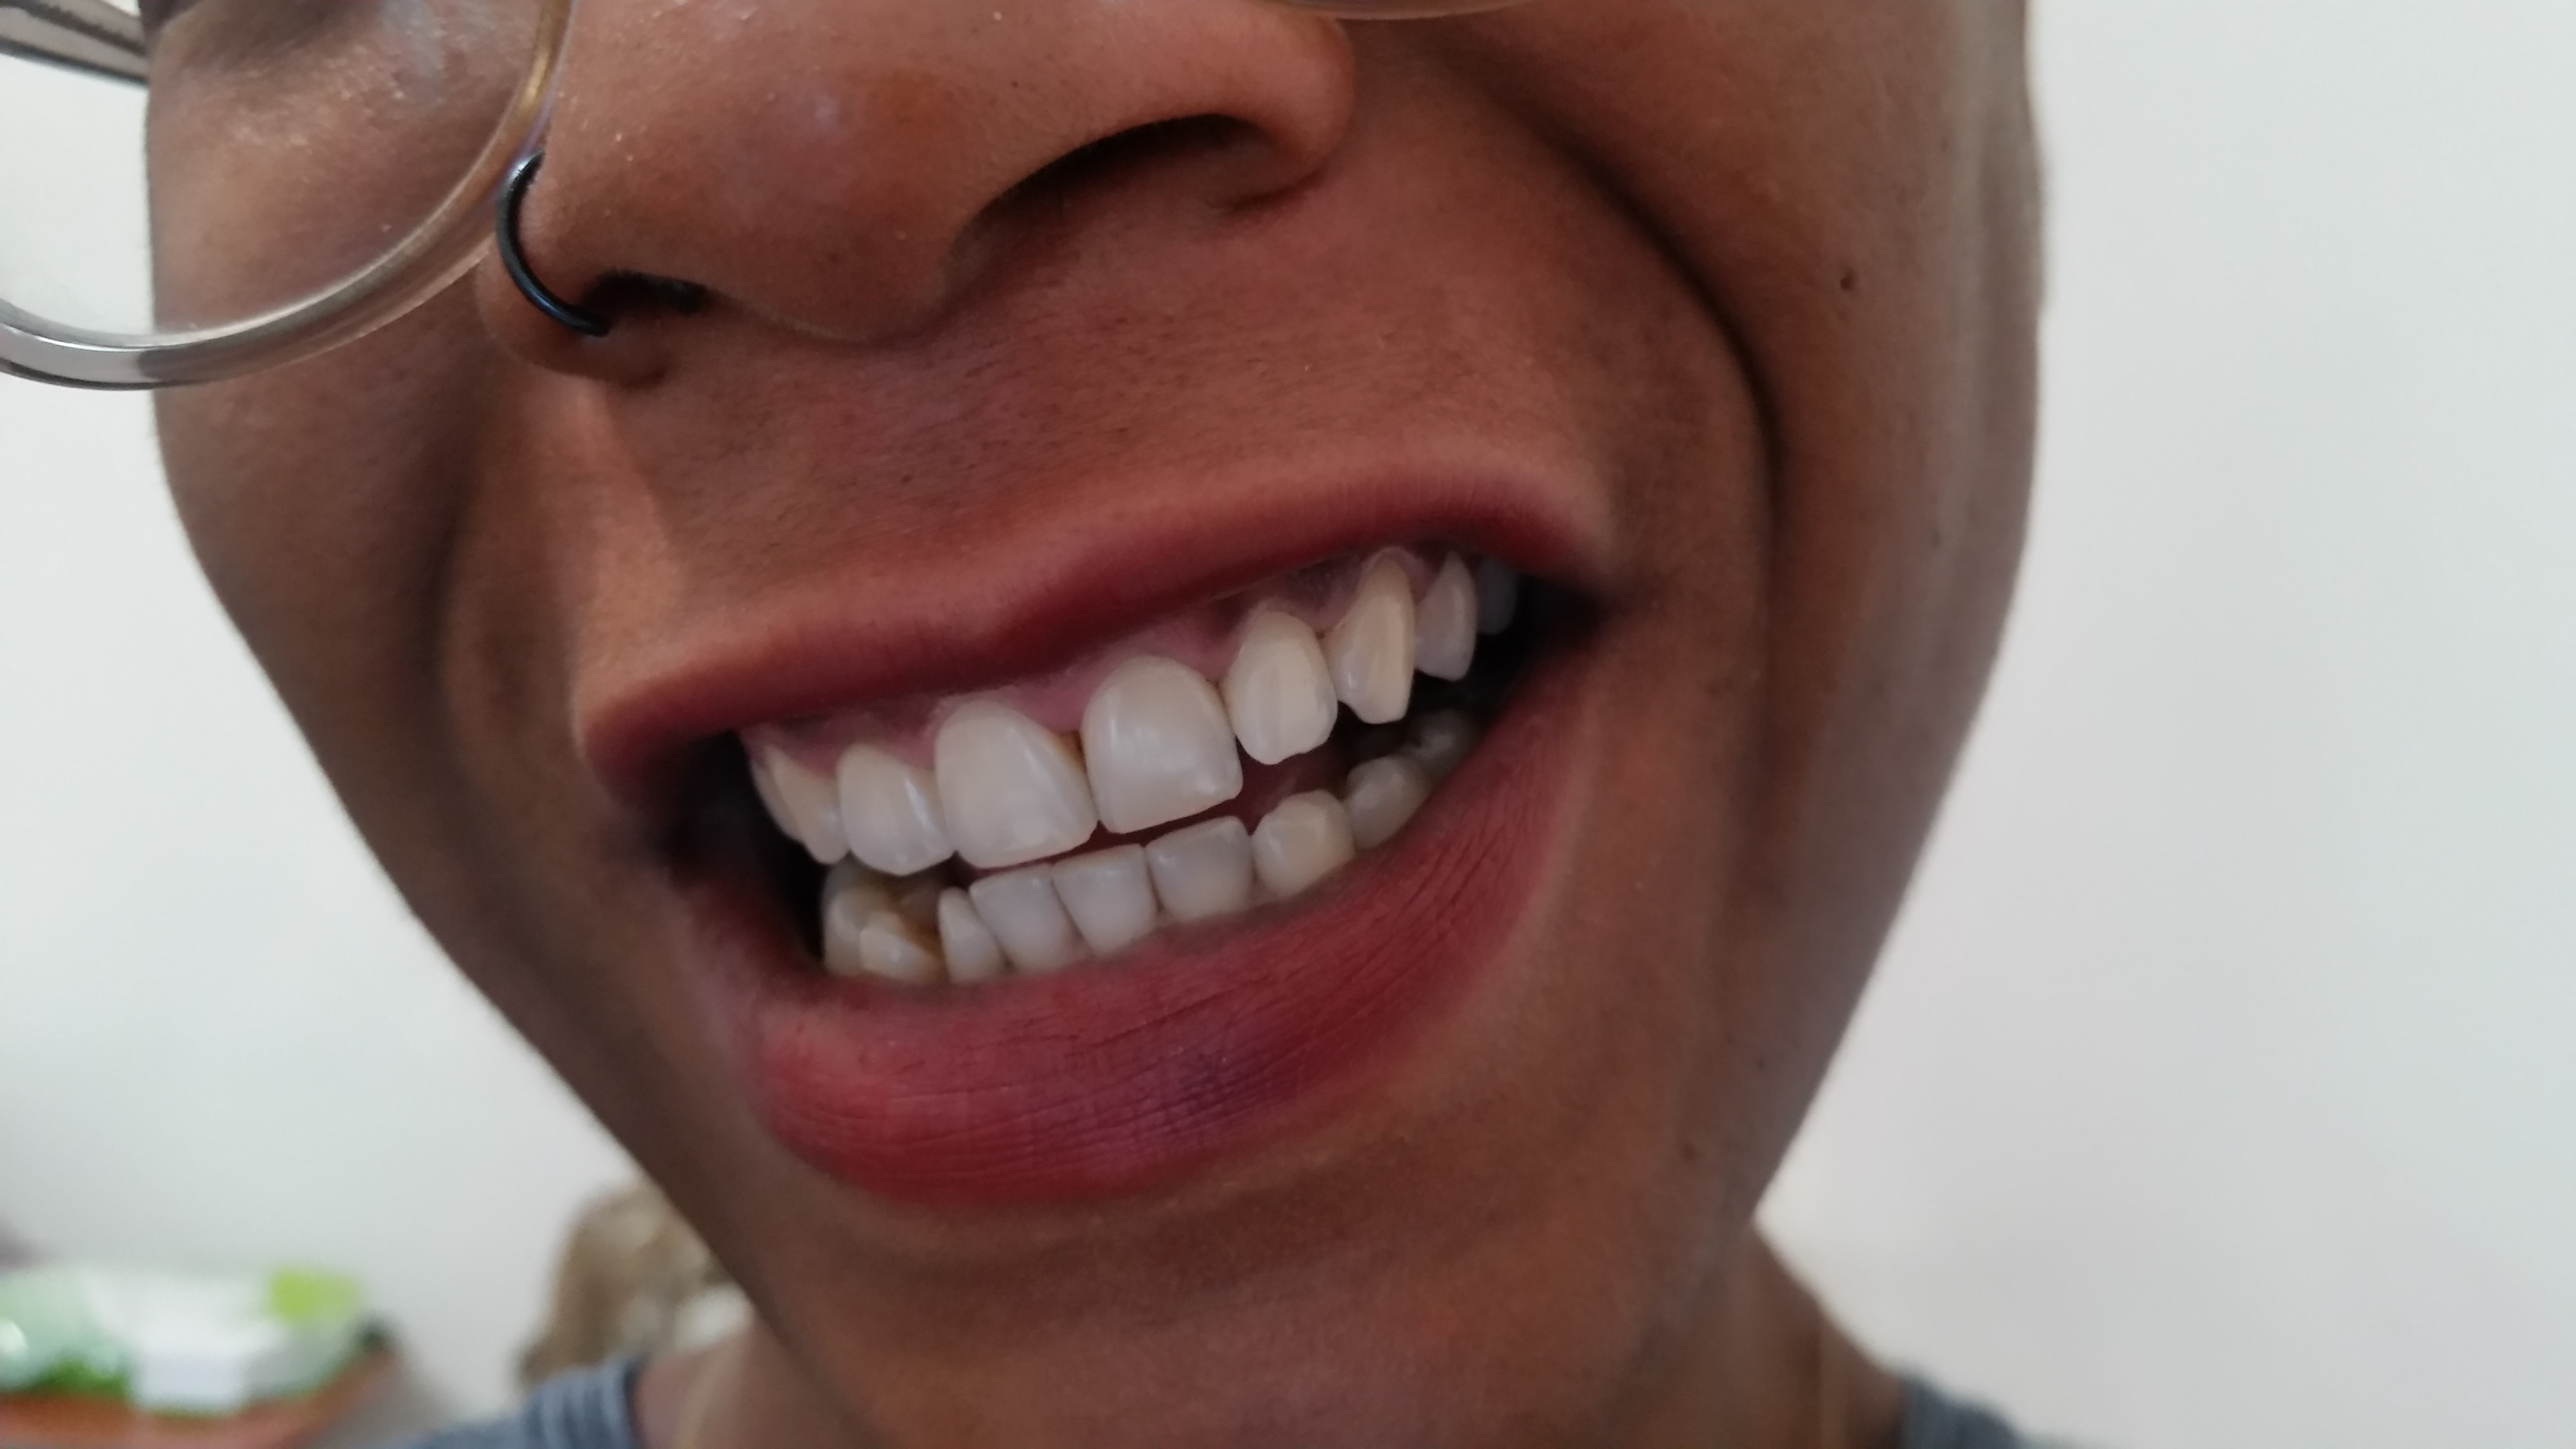 I Tested 6 Home Remedies To Whiten Teeth This One Worked The